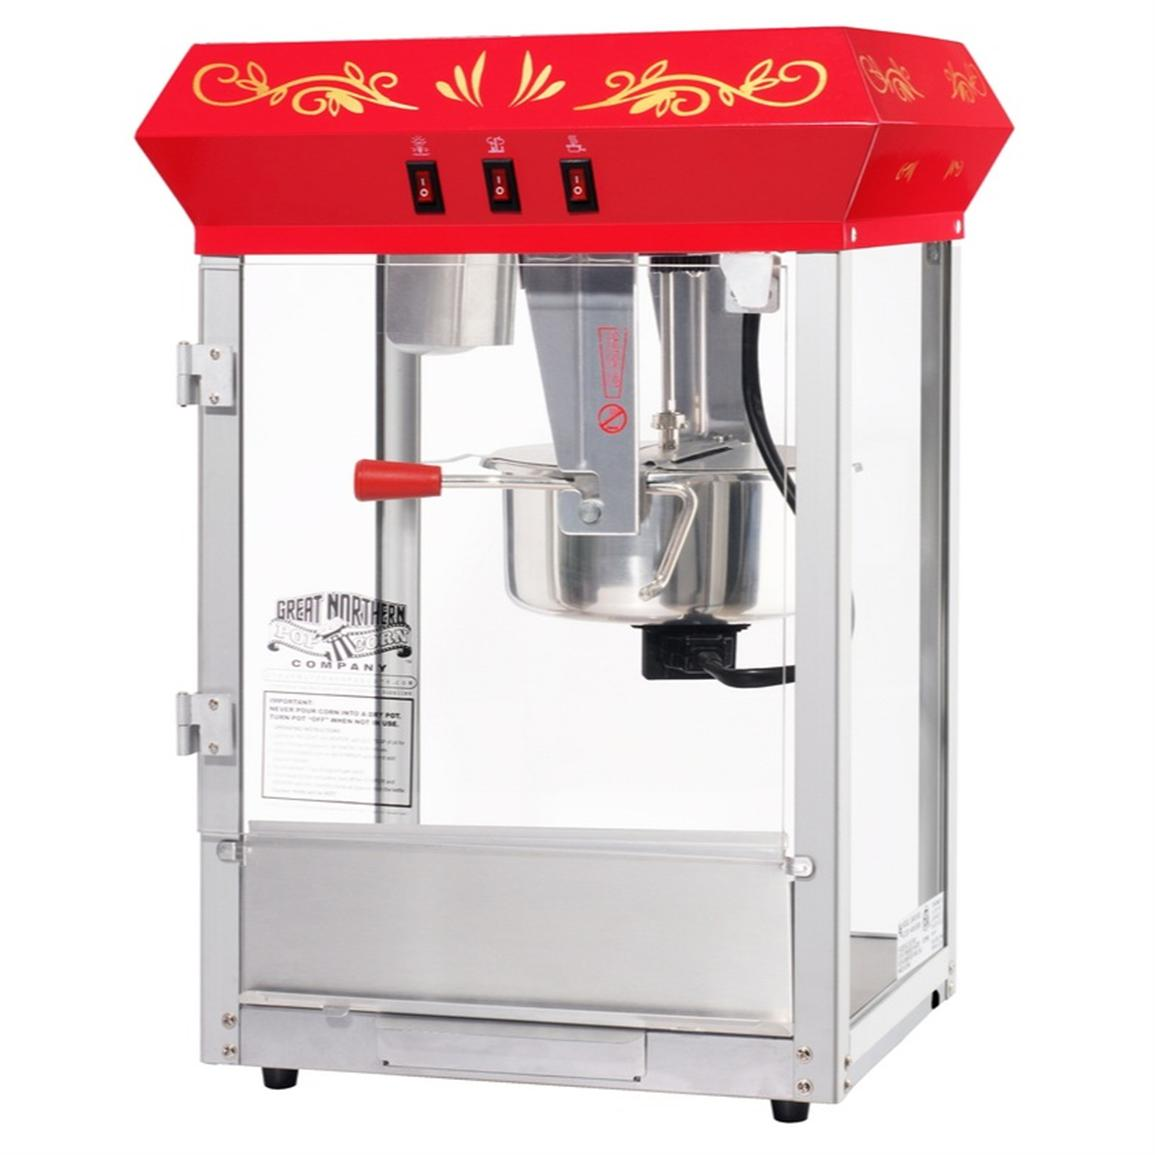 Great Northern Popcorn® All Star GNP 850 8 oz. Tabletop Popcorn Machine